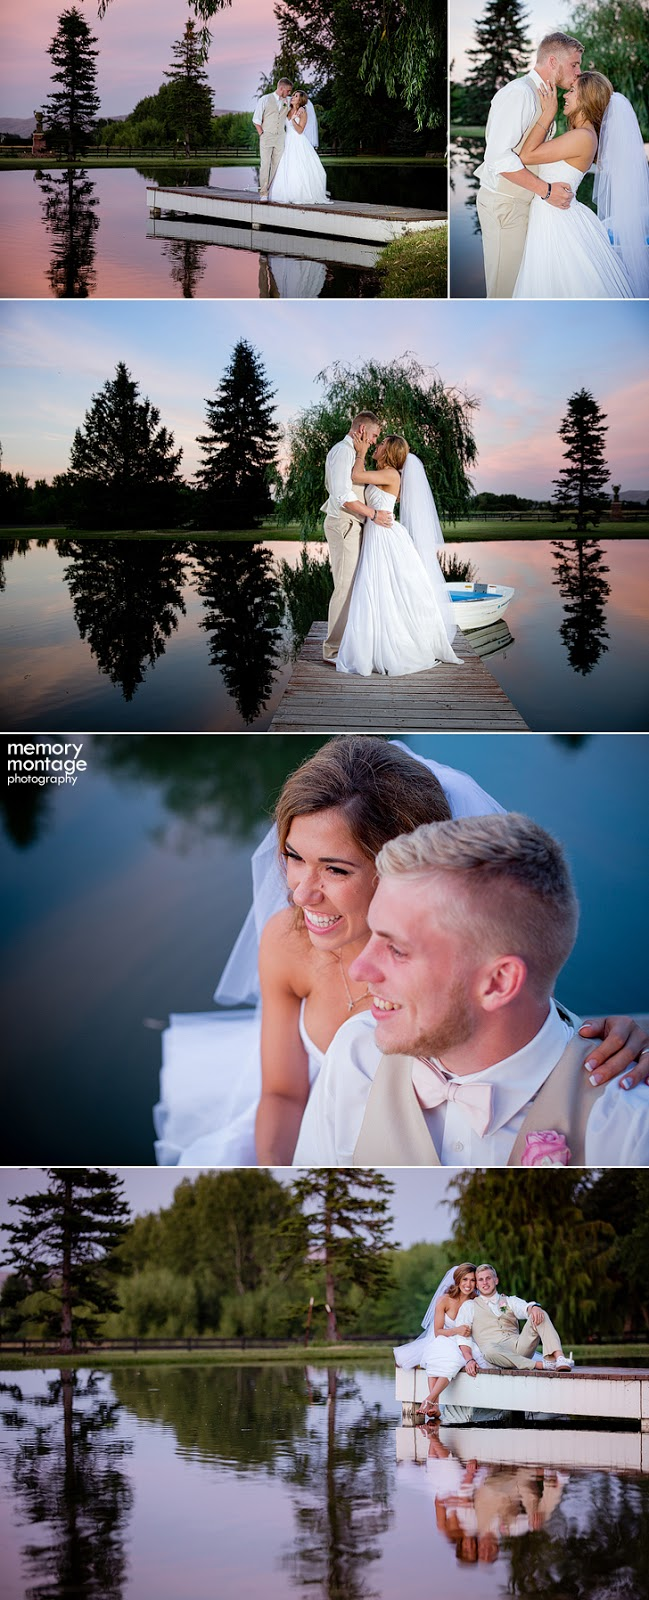 Anna and Cooper Kupp, Yakima Wedding Photography, Cooper Kupp wedding, Craig Kupp, Jake Kupp, Yakima Wedding Photographers, Summer Wedding in Yakima, Pink and Tan wedding, Memory Montage Photography